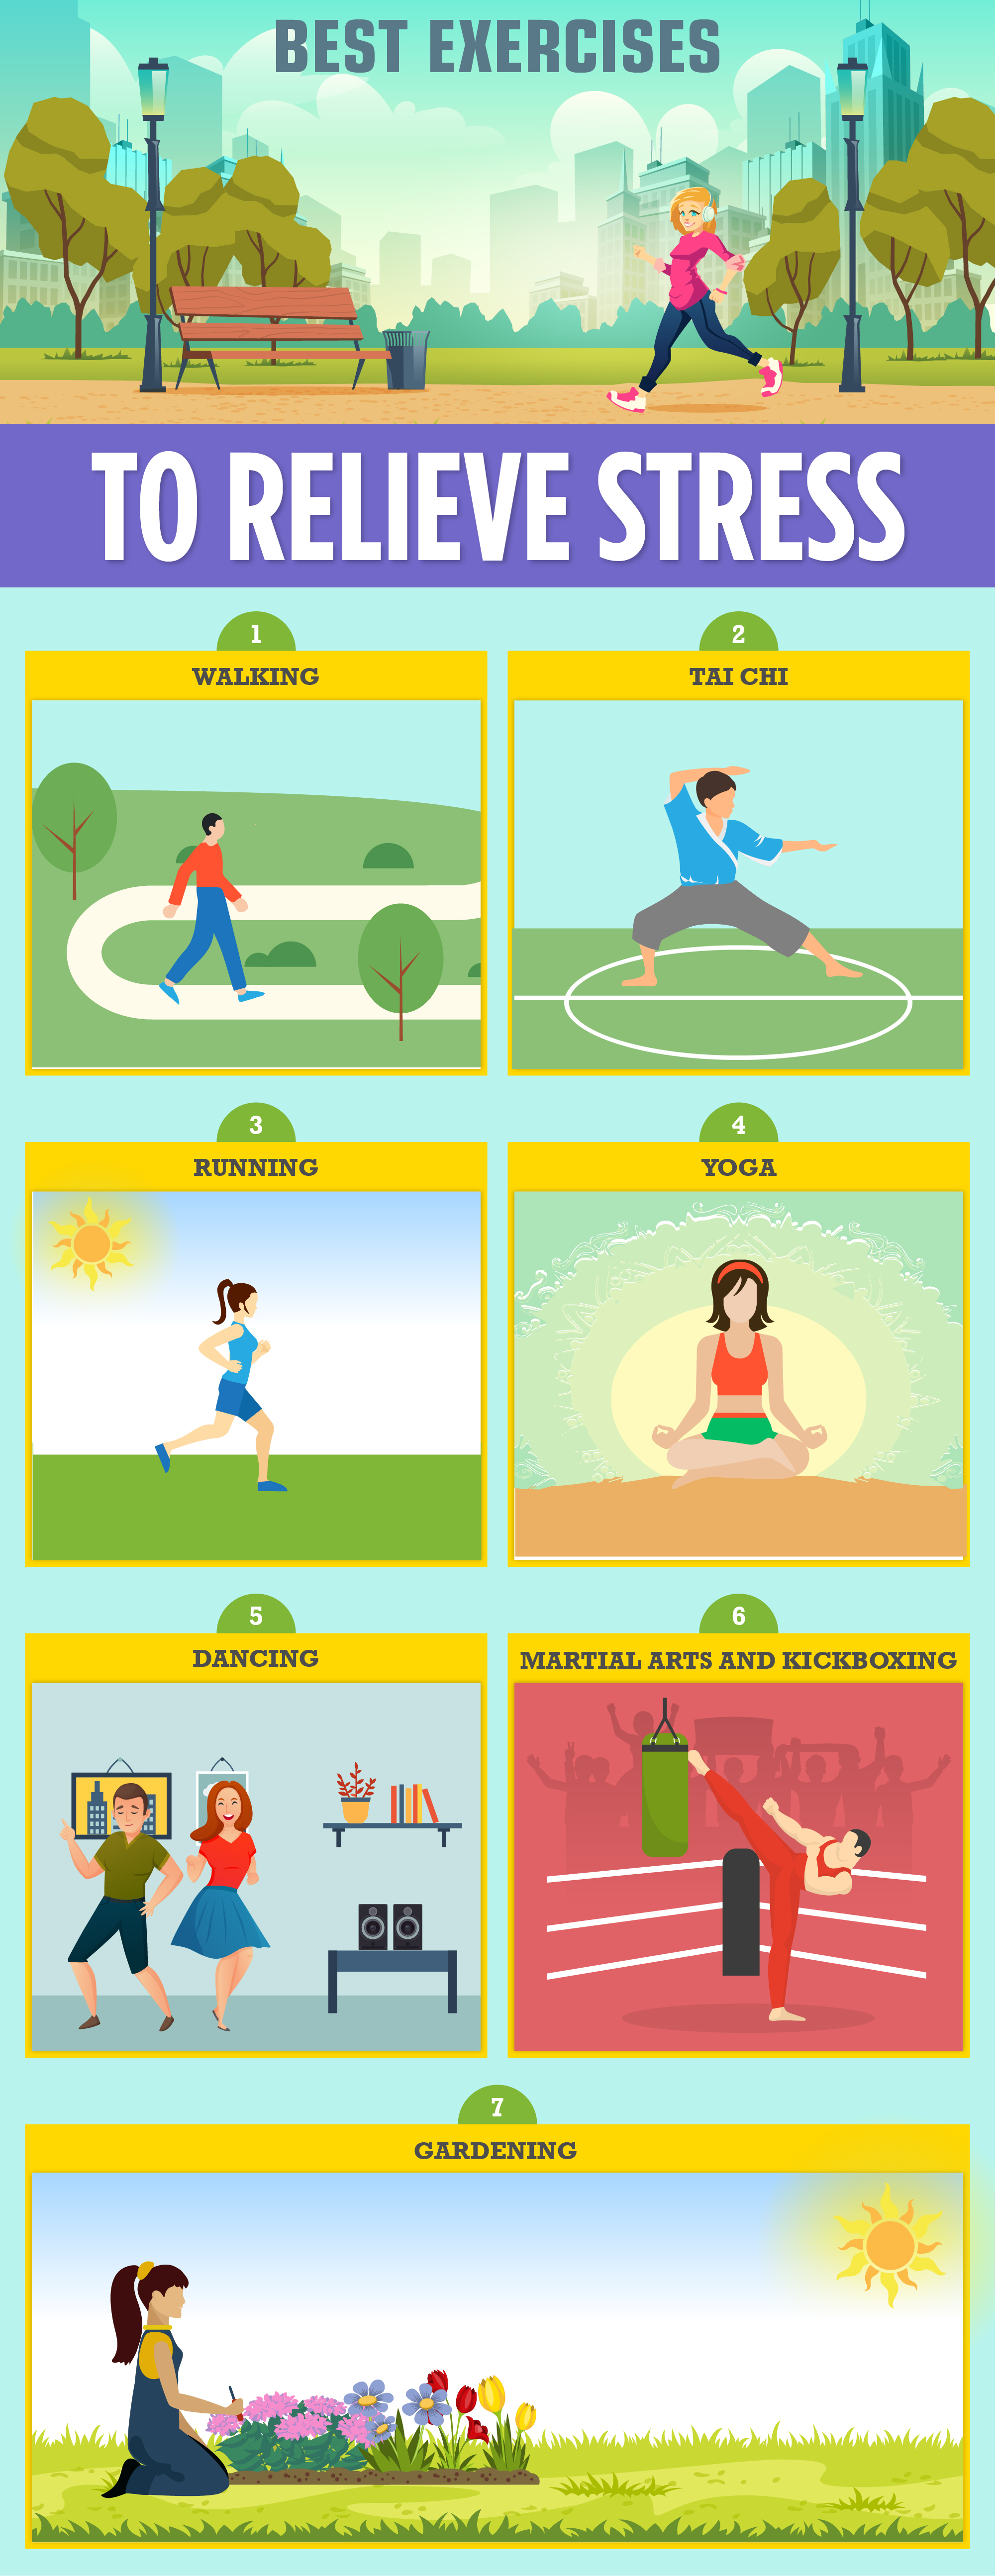 Best Exercises to Relieve Stress